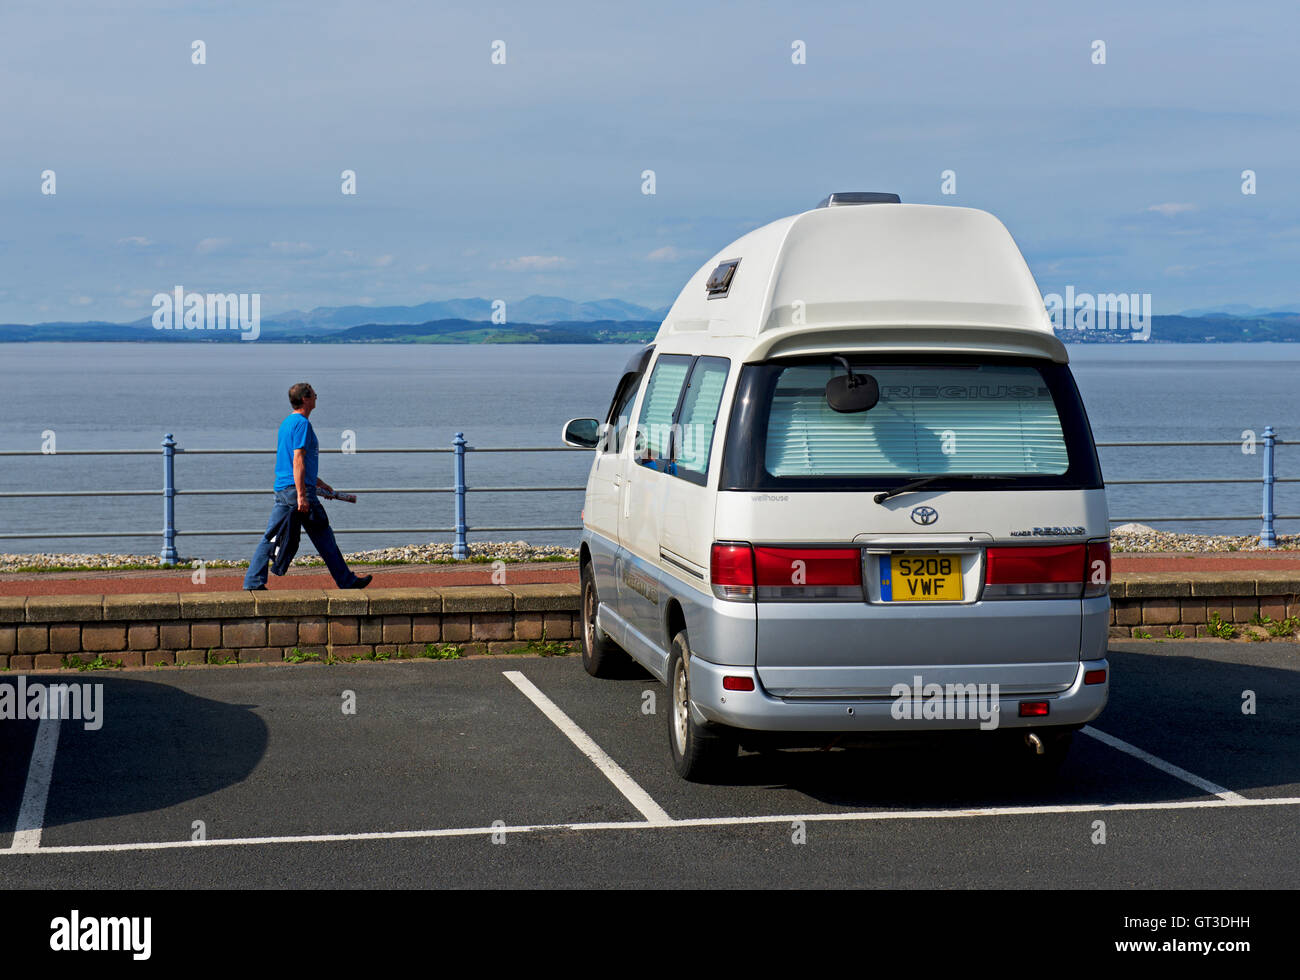 Hiace Regius campervan parked in Morecambe, Lancashire, England UK - Stock Image